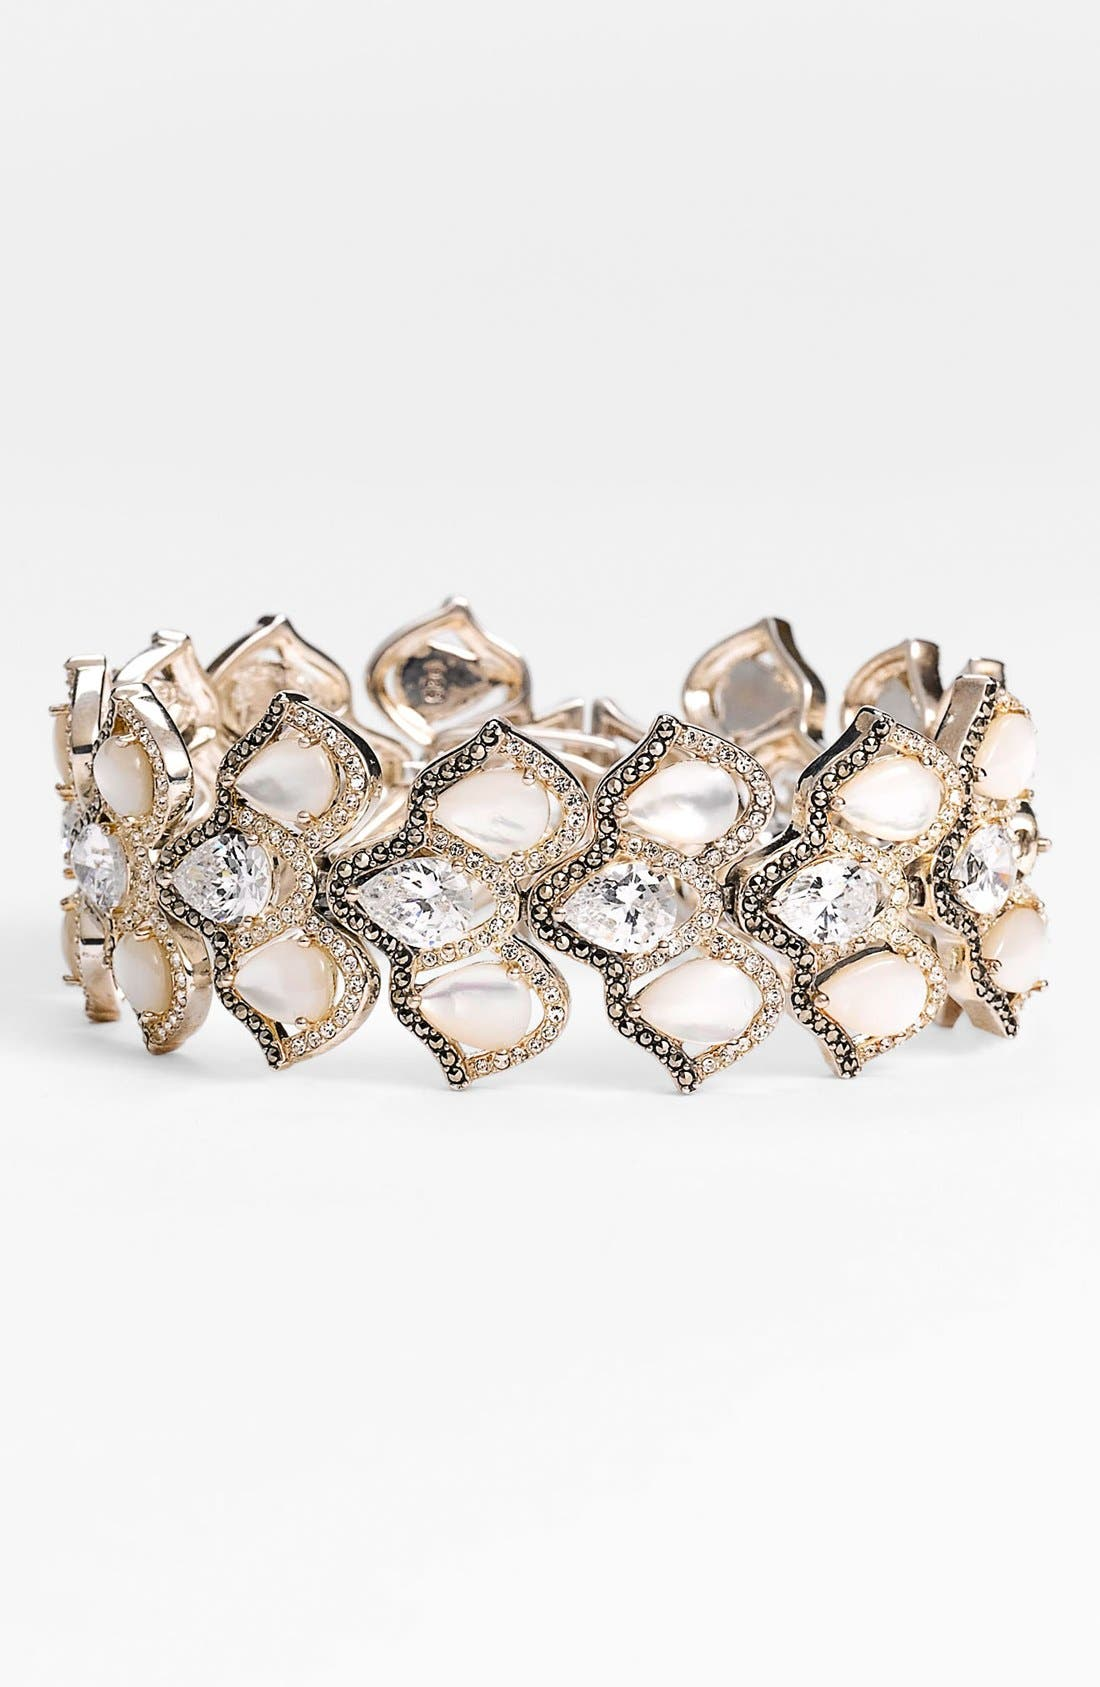 Alternate Image 1 Selected - Judith Jack 'Amore' Wide Line Bracelet